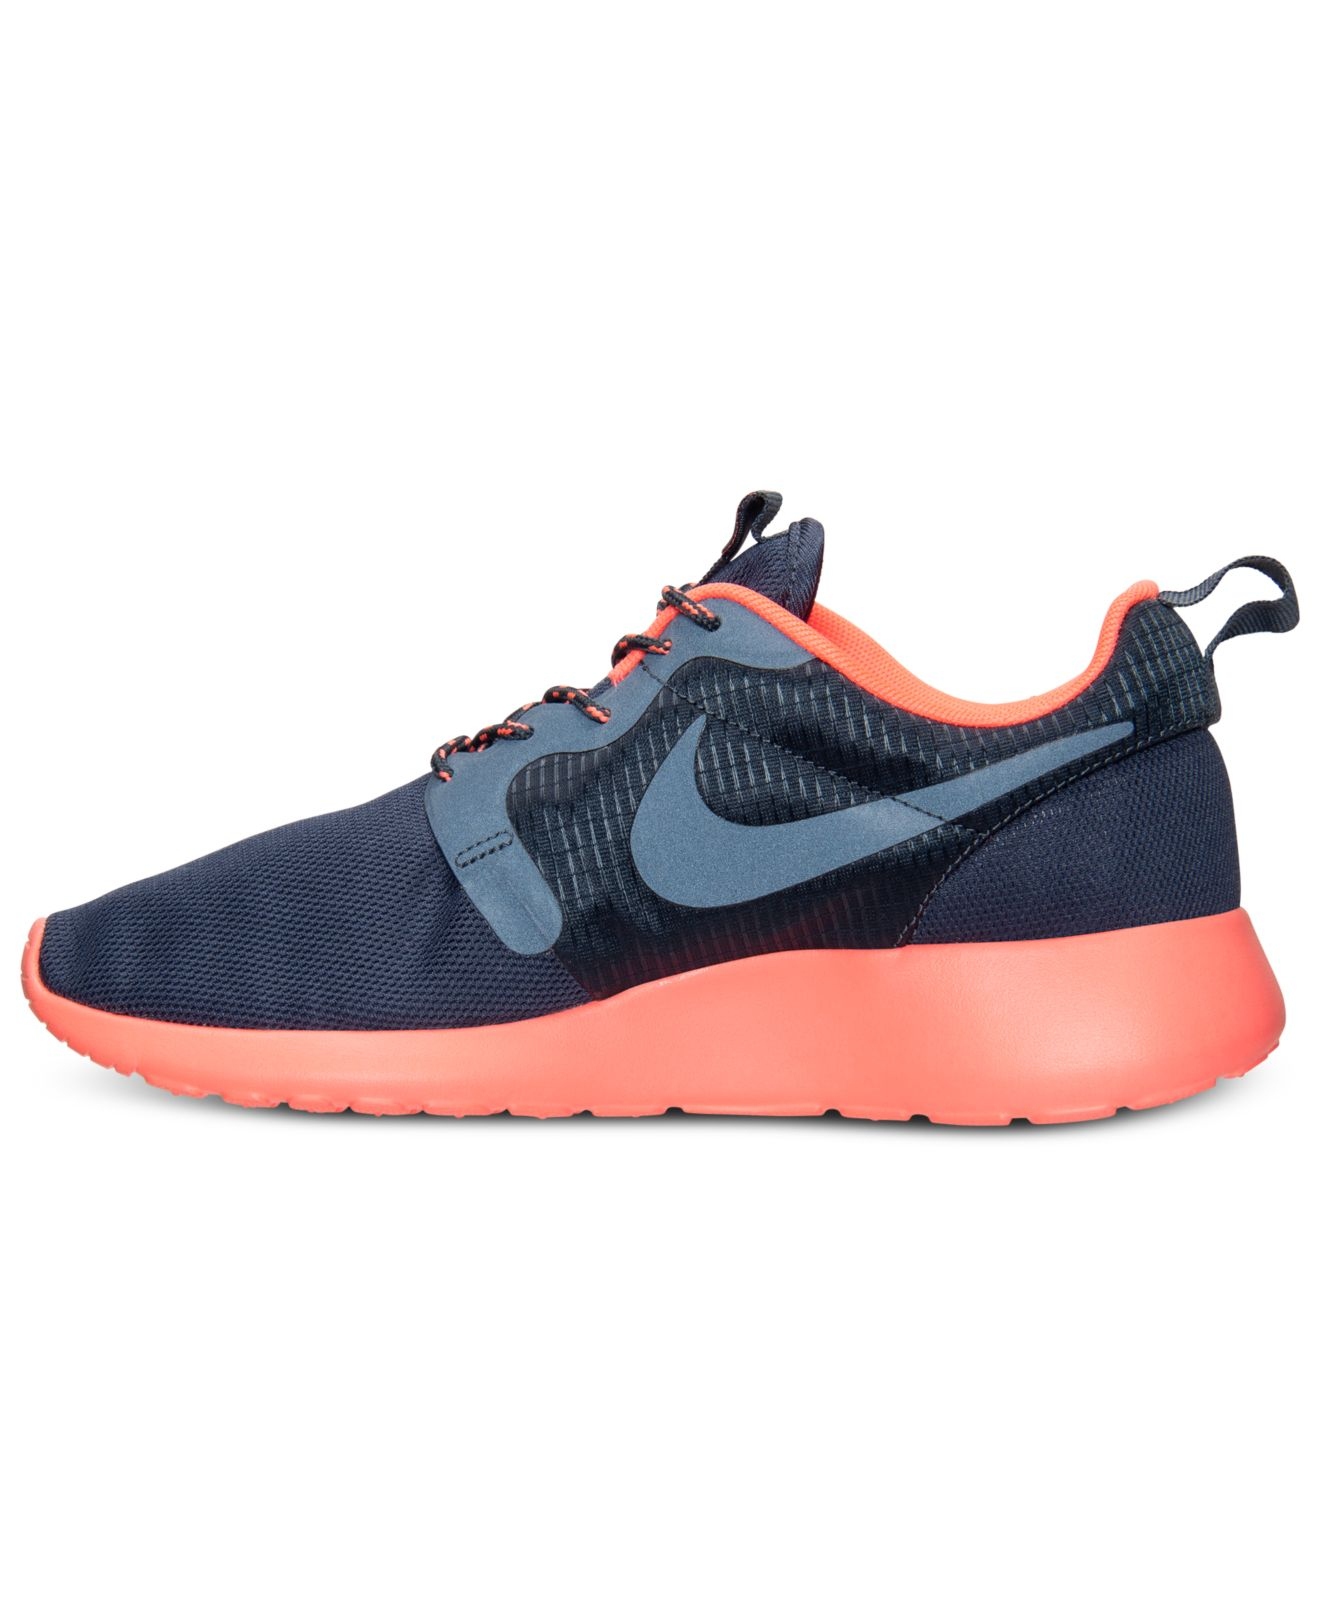 lyst nike women 39 s roshe run hyperfuse casual sneakers. Black Bedroom Furniture Sets. Home Design Ideas